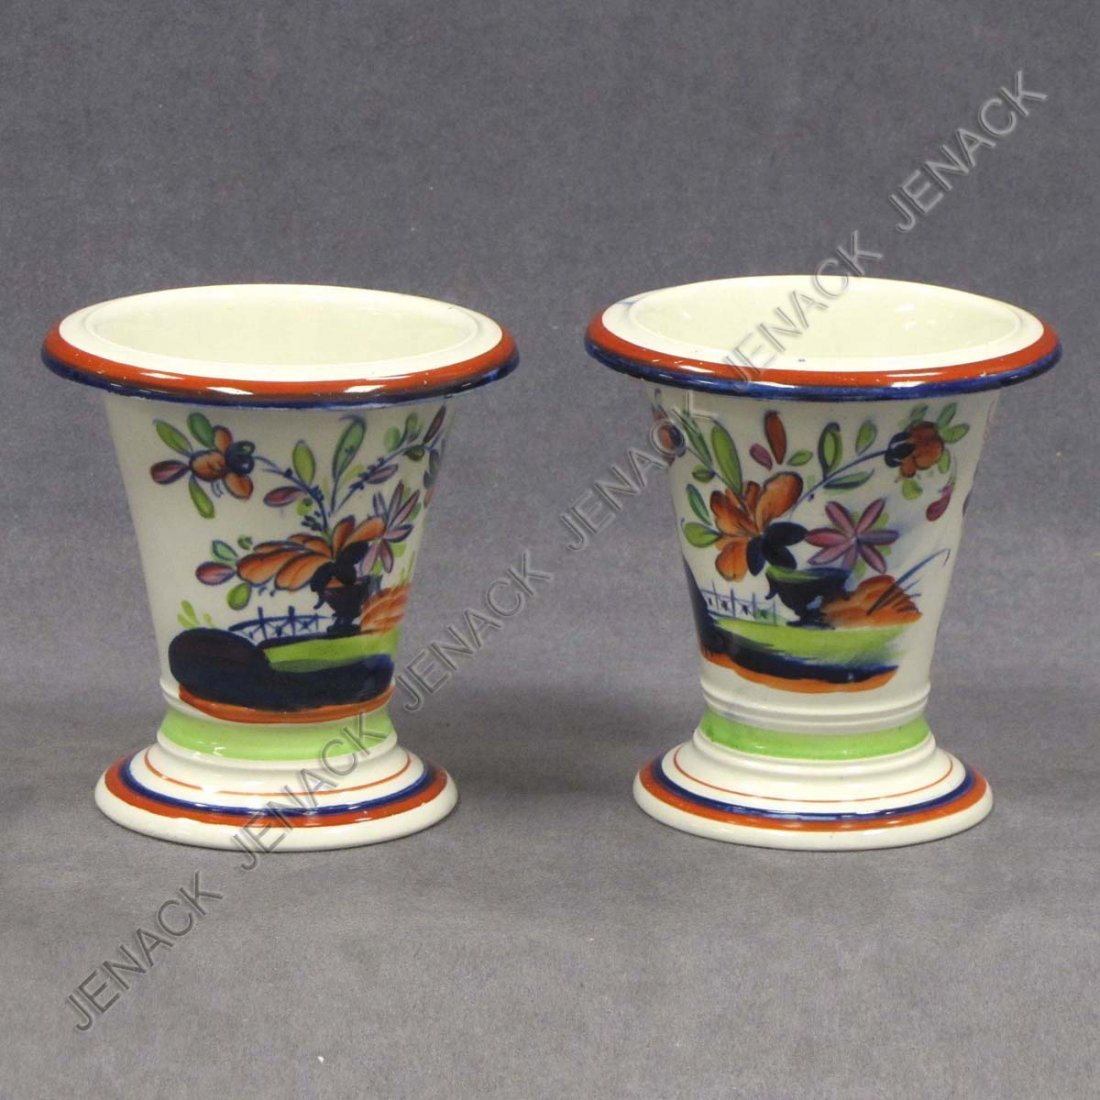 10: PAIR GRIFFITH'S GAUDY WELSH CONICAL VASES